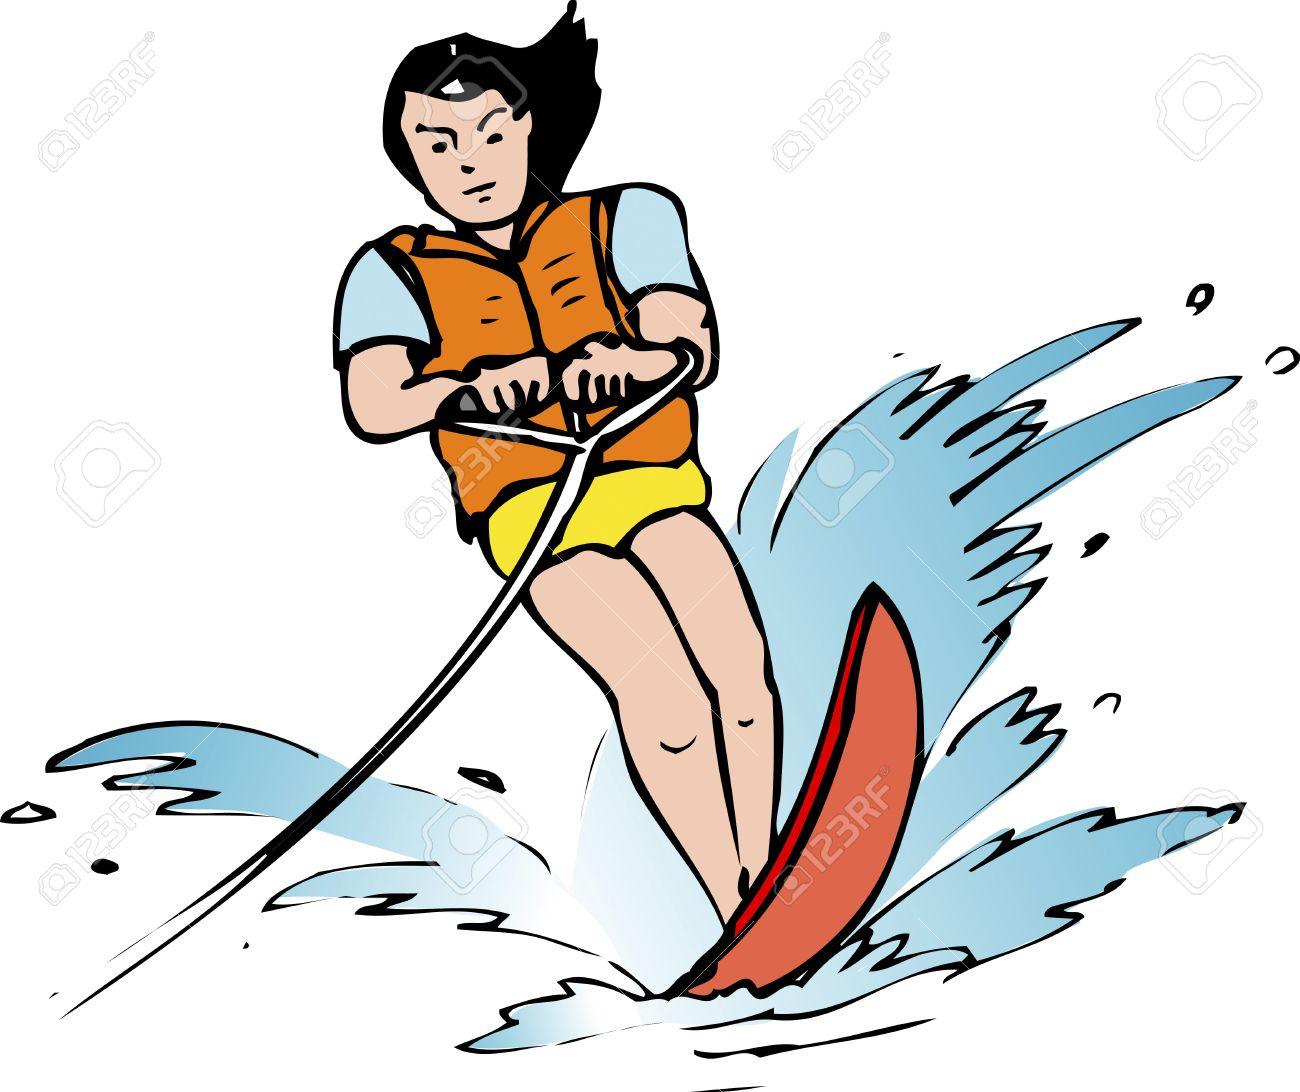 Water skiing clipart 5 » Clipart Station.